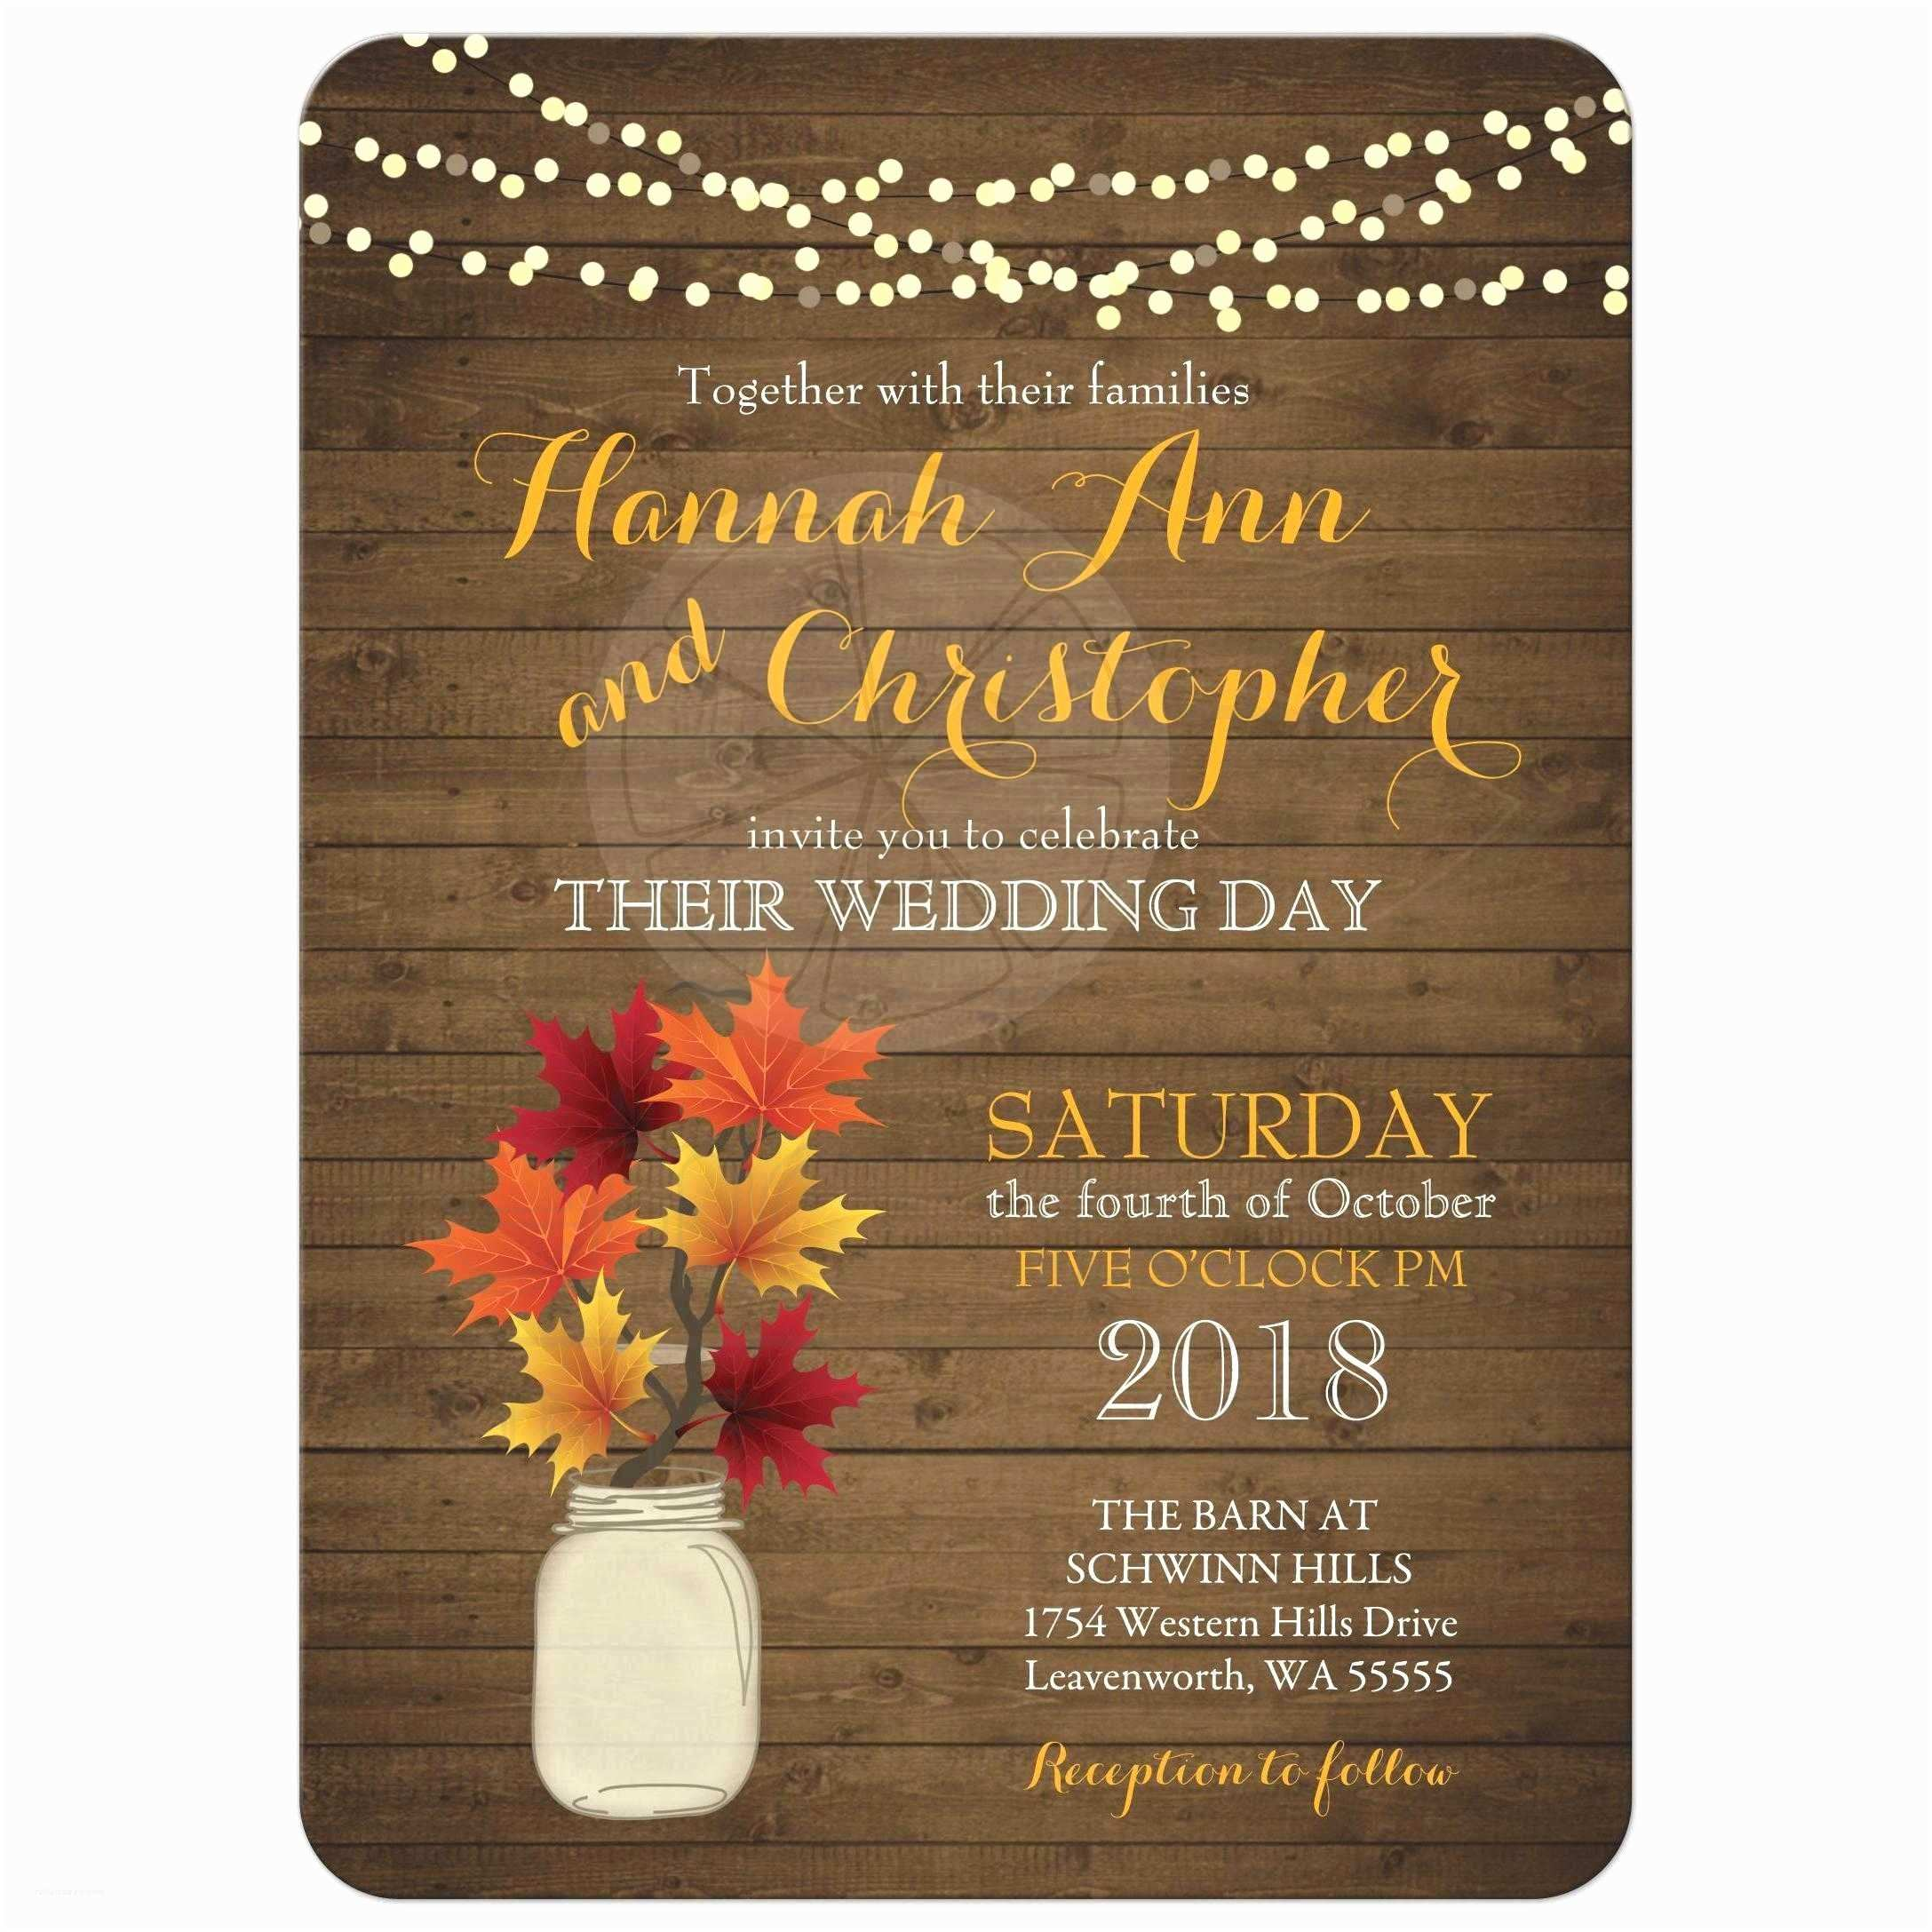 October Wedding Invitations Rustic Country Fall Wedding Invitations Featuring A Rustic